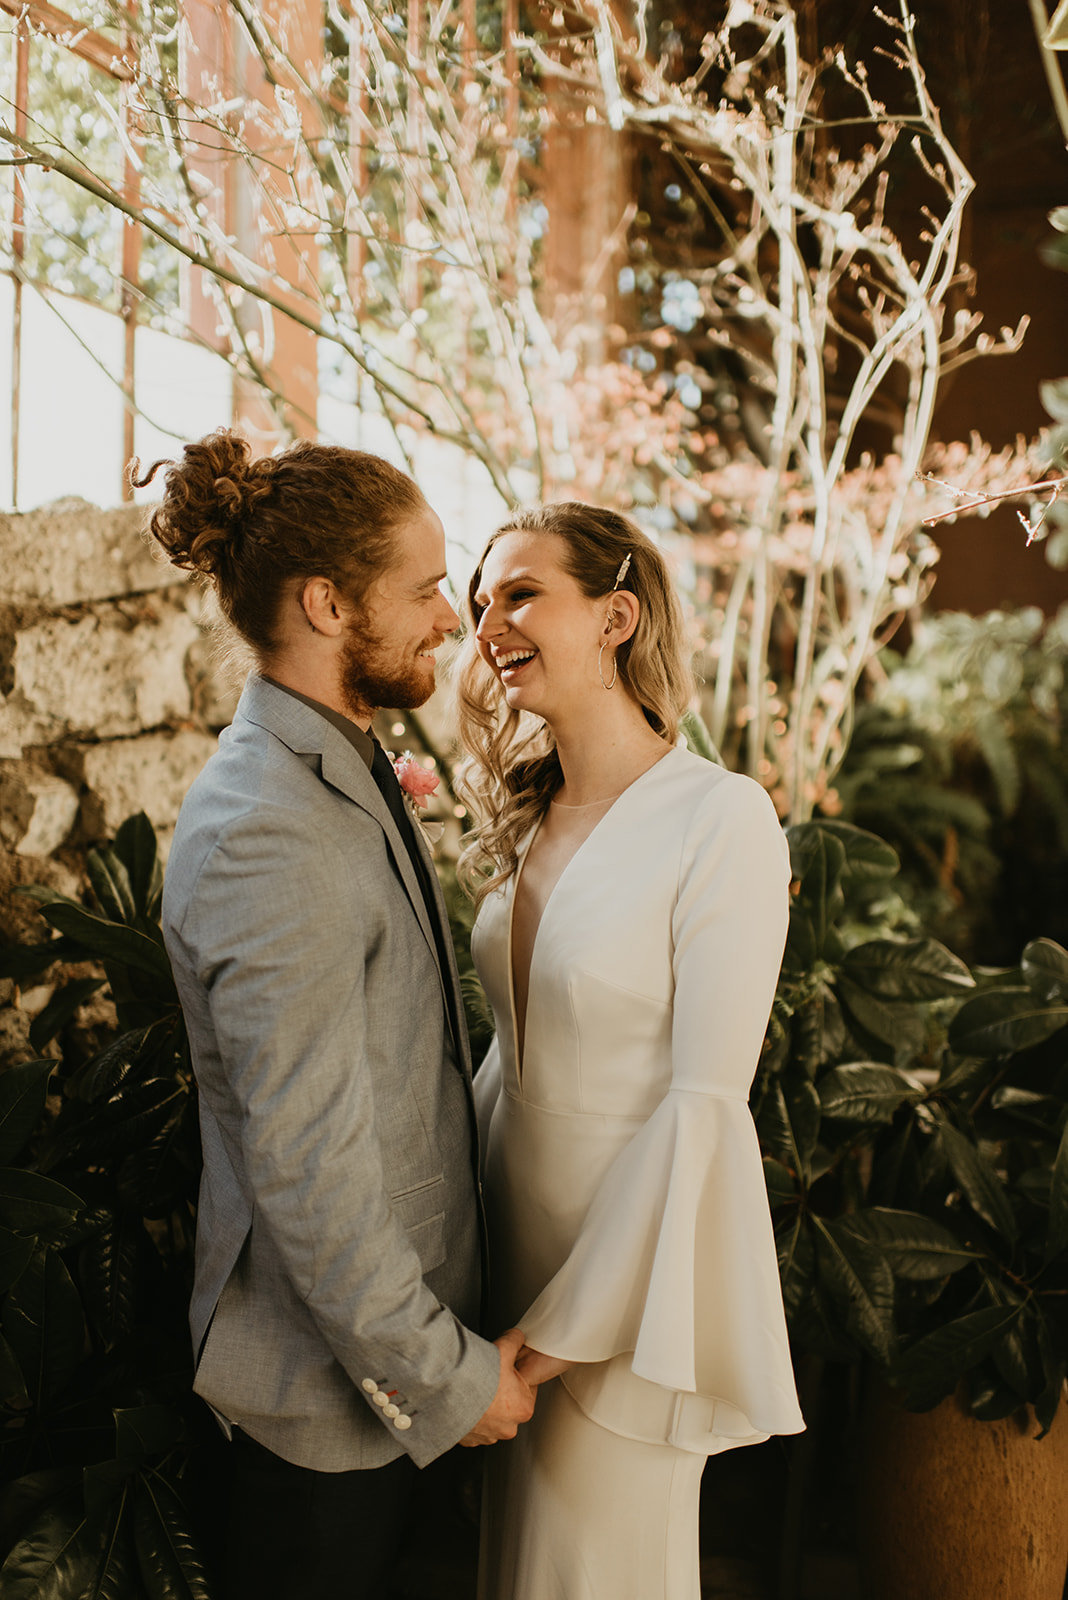 Britty + Beau - Elopement - The Ruins_ Seattle_ WA - Kamra Fuller Photography - Runaway With Me Elopement Collective-160